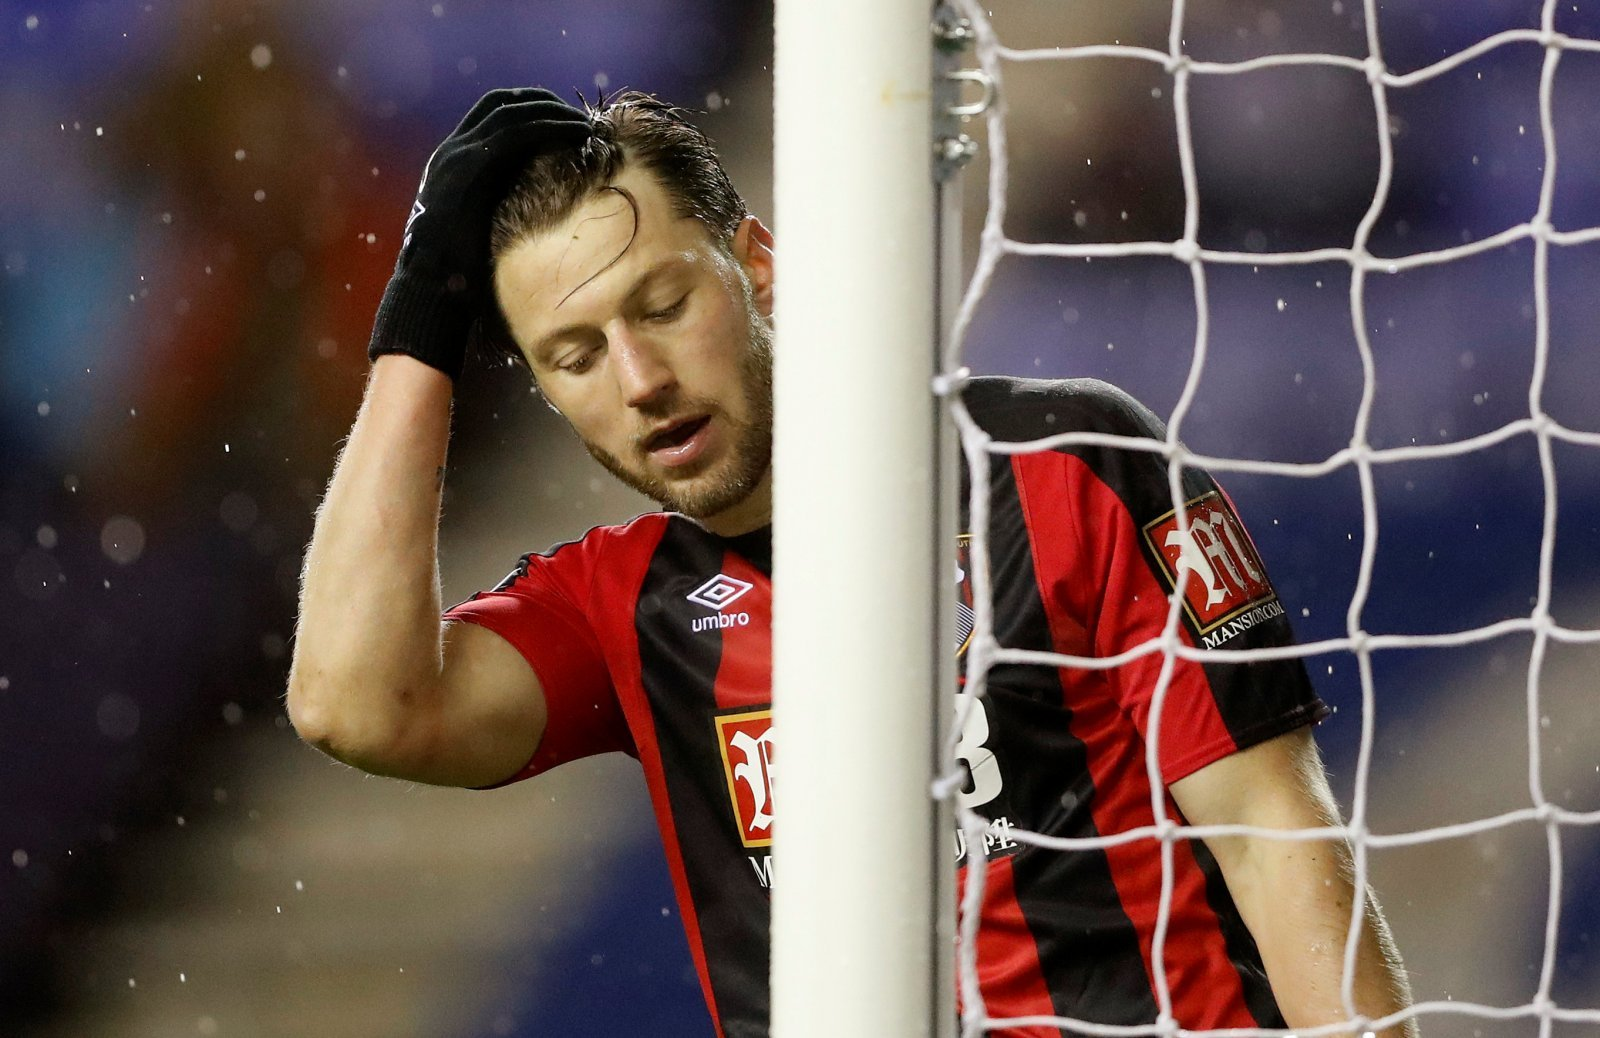 Newcastle fans on Twitter fume that Arter survived Cardiff clash